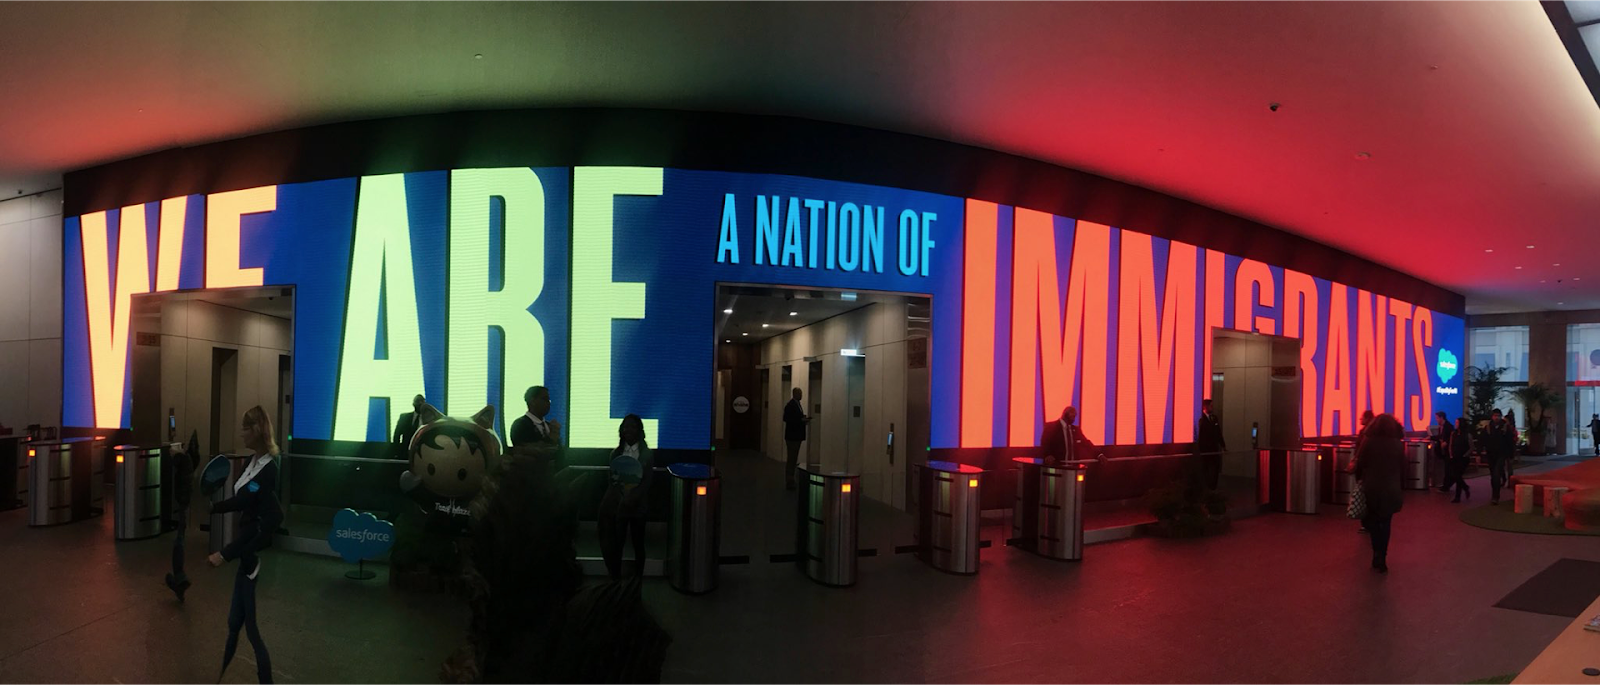 """Lobby of a Salesforce building with the quote """"We are a nation of immigrants"""" as a light-up display in reaction to policies around DACA and H1B visas."""